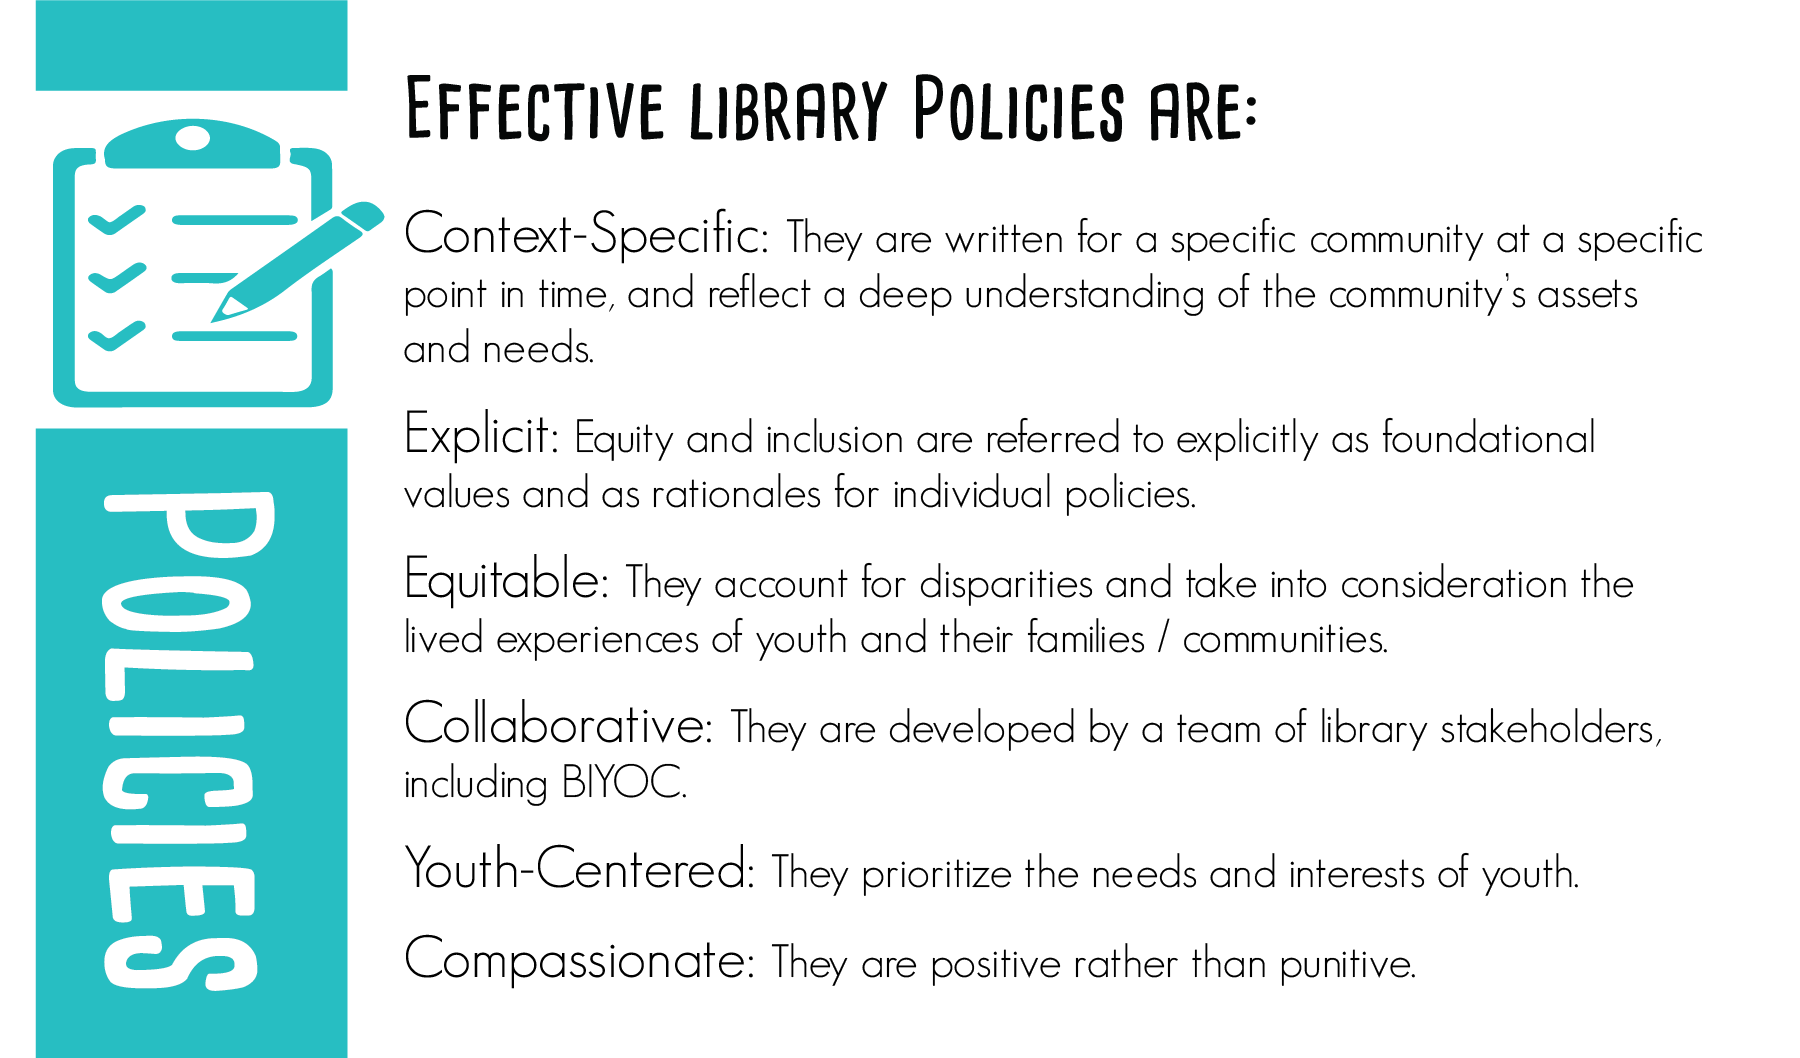 Effective library policies are:  Context-specific: They are written for a specific community at a specific point in time, and reflect a deep understanding of the community's assets and needs.  Explicit: Equity and inclusion are referred to explicitly as foundational values and as rationales for individual policies.  Equitable: They account for disparities and take into consideration the lived experiences of youth and their families / communities.  Collaborative: They are developed by a team of library stakeholders, including BIYOC.  Youth-Centered: They prioritize the needs and interests of youth.  Compassionate: They are positive rather than punitive.